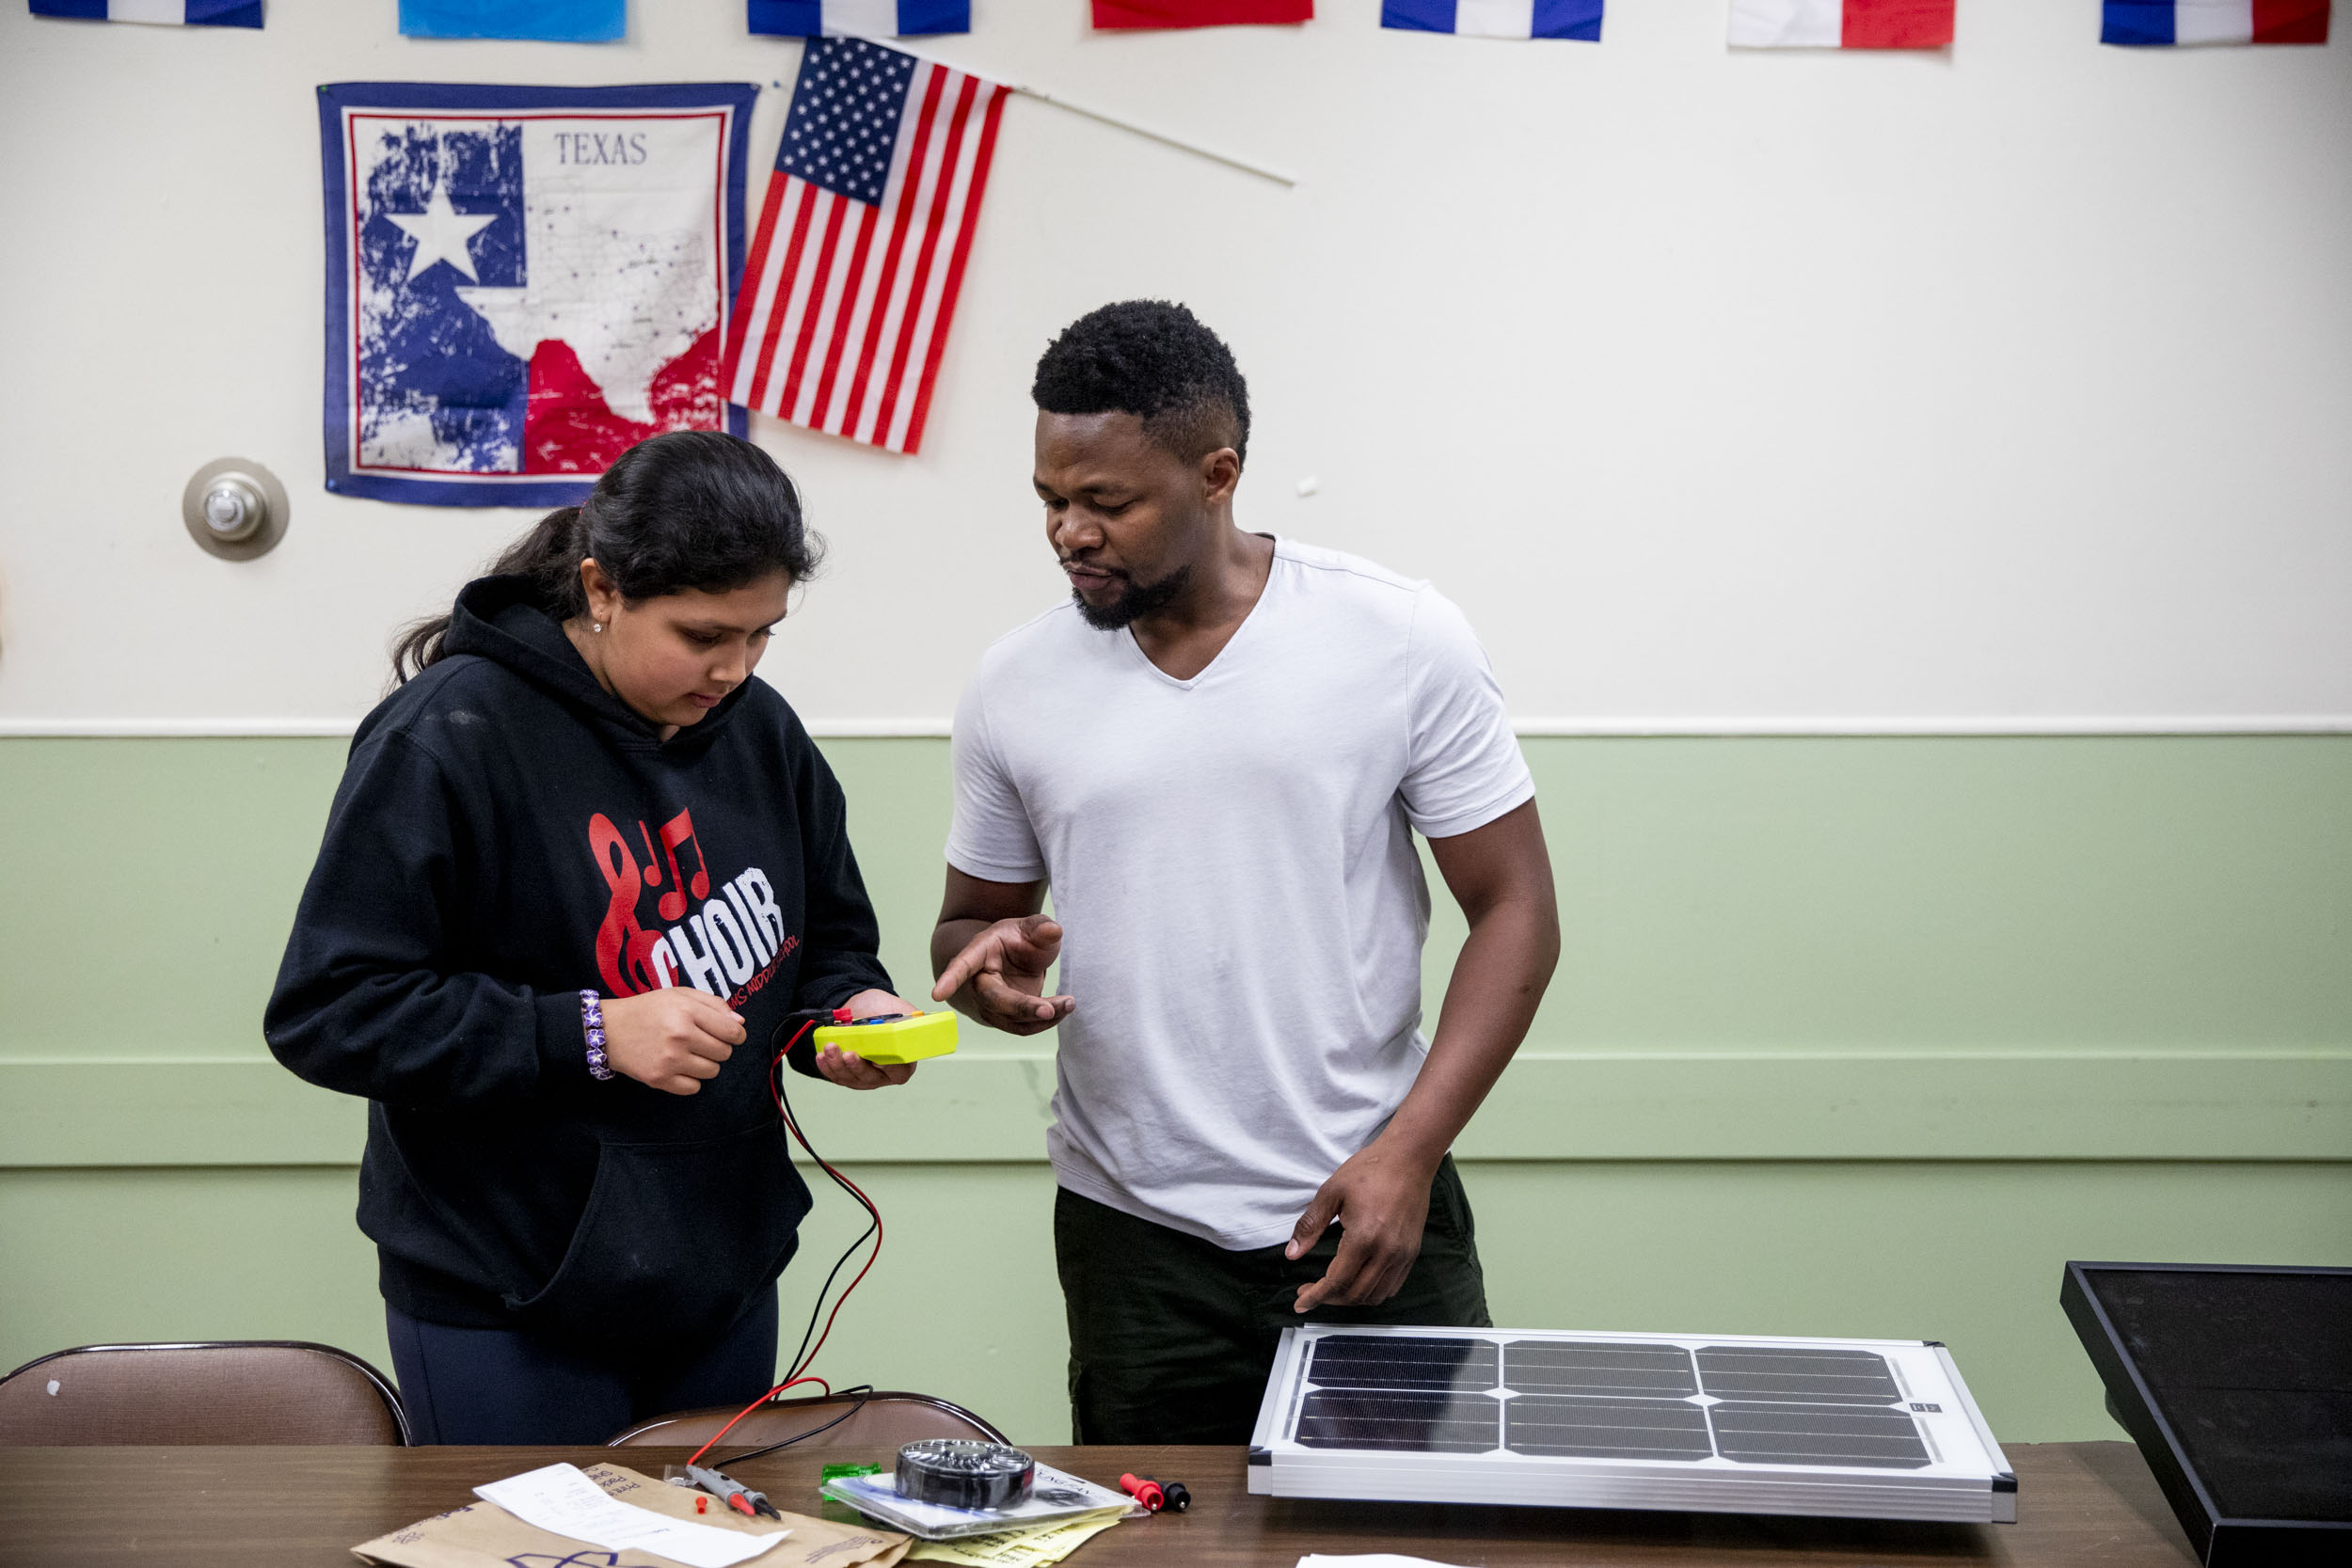 Edwin show a young Seattleite how to set up solar panels